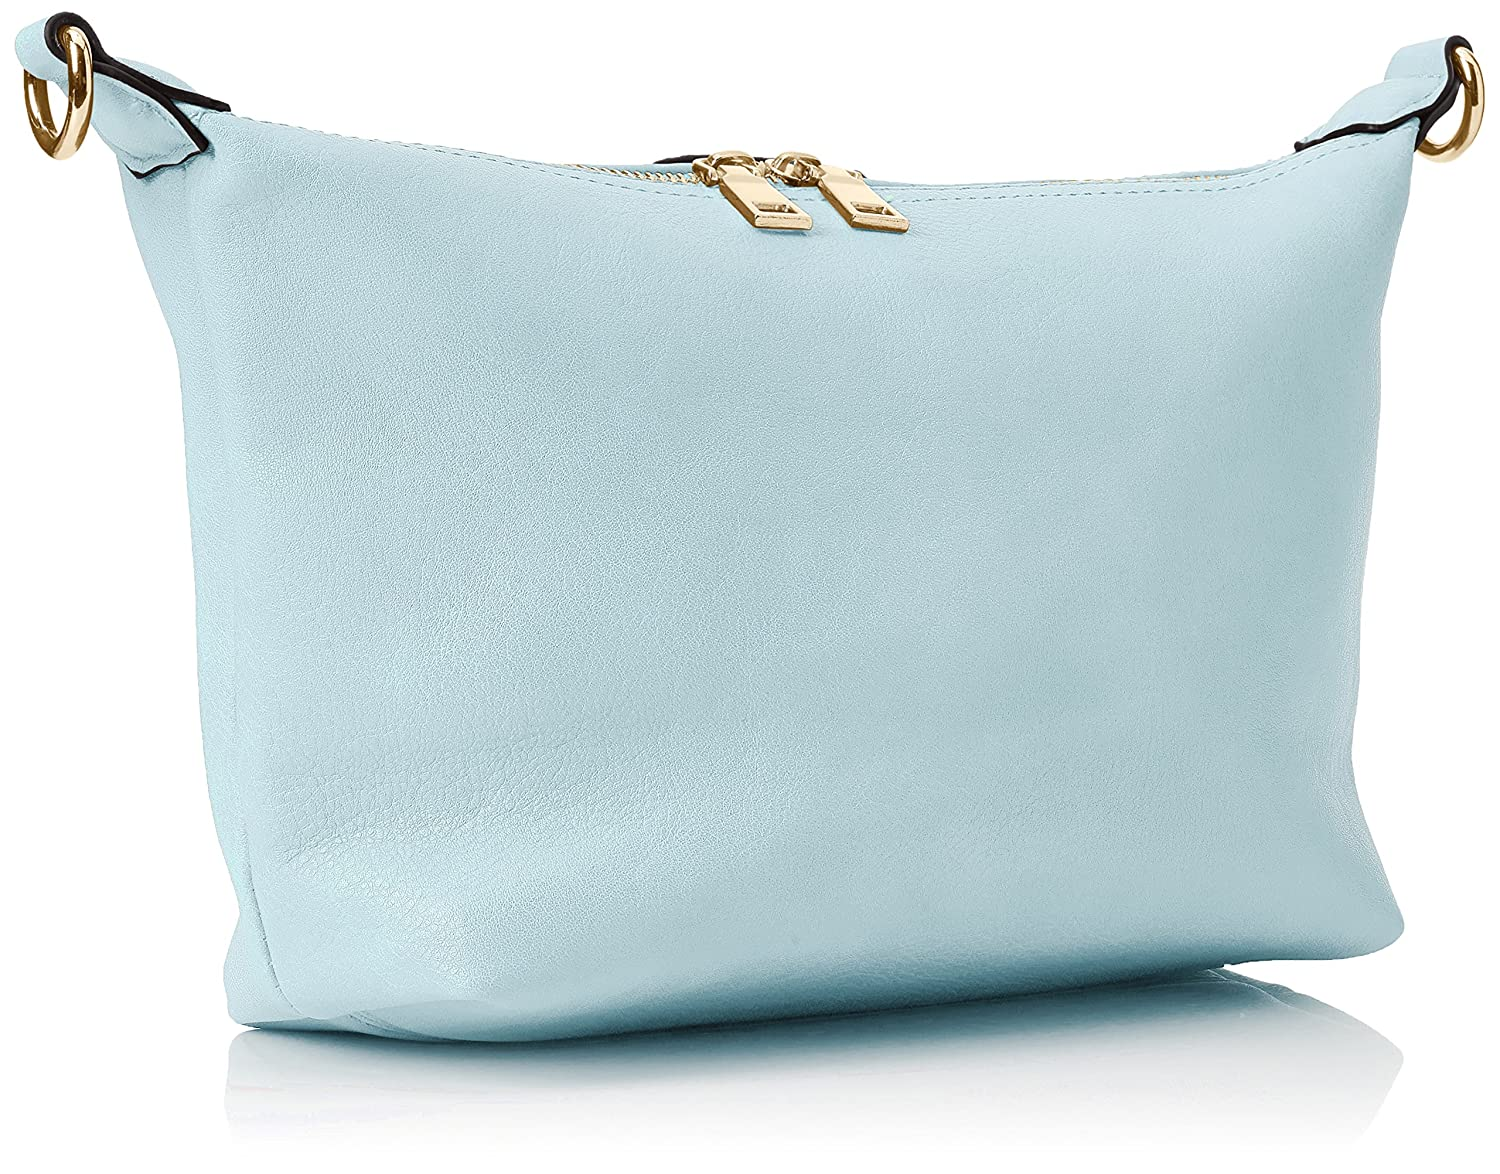 Damen Caprice Shoulder Bag Umhängetasche, Blau (Light Blue), 11x26x28 cm Swankyswans